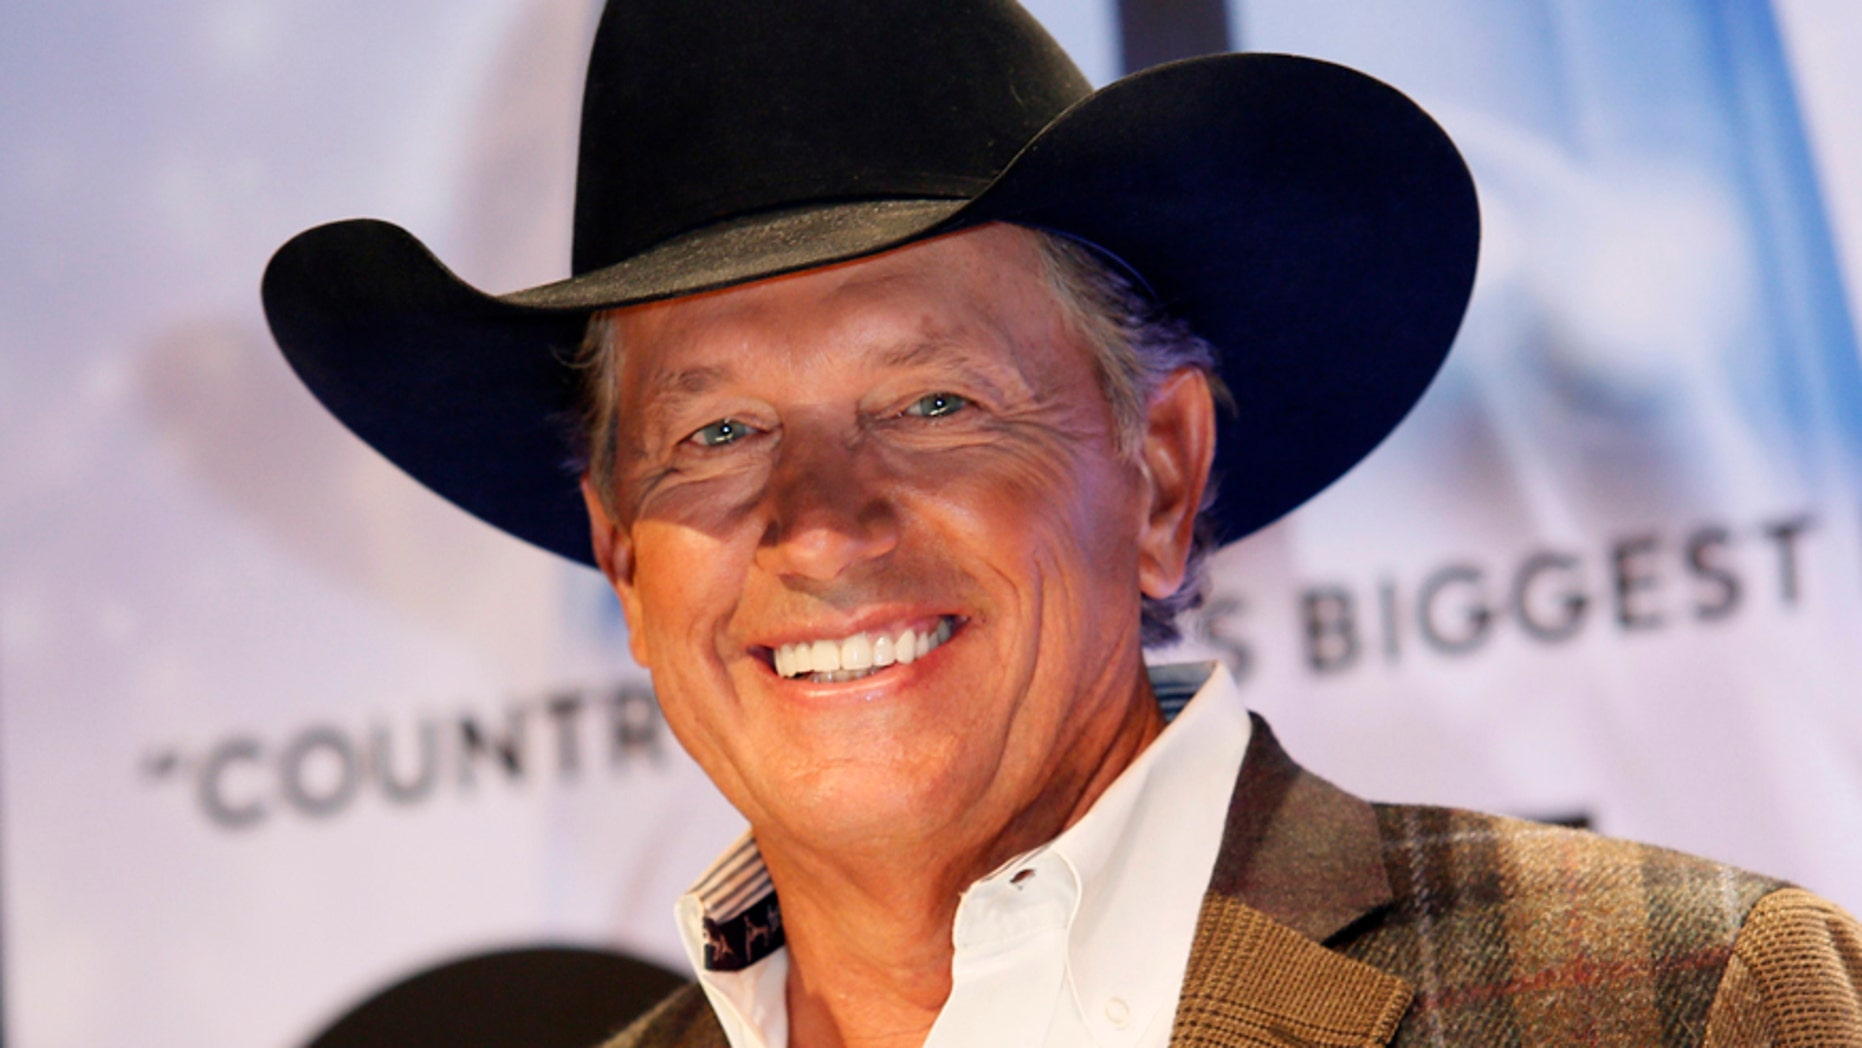 The singer, who wrapped up his final tour this year, will have a nice $26 million to add to his retirement fund.